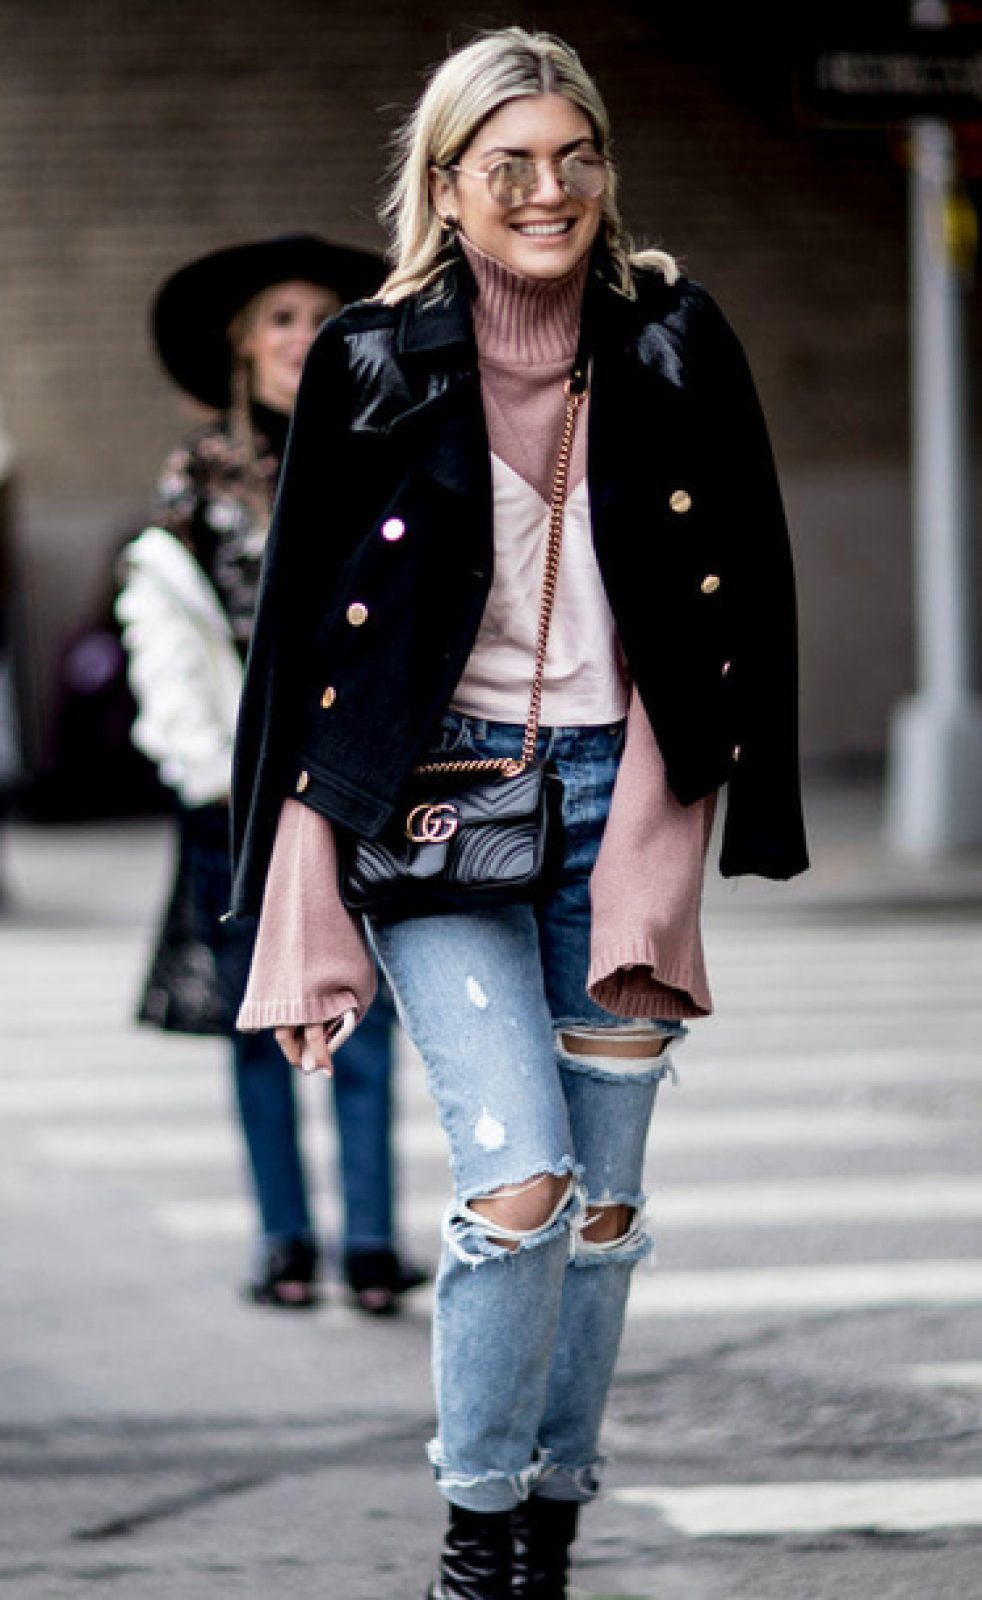 24sq8z-l-610×610-jacket-nyfw+2017-fashion+week+2017-fashion+week-streetstyle-black+jacket-sweater-pink+sweater-bell+sleeves-bell+sleeve+sweater-denim-jeans-blue+jeans-ripped+jeans–bag-gucci-gucci+